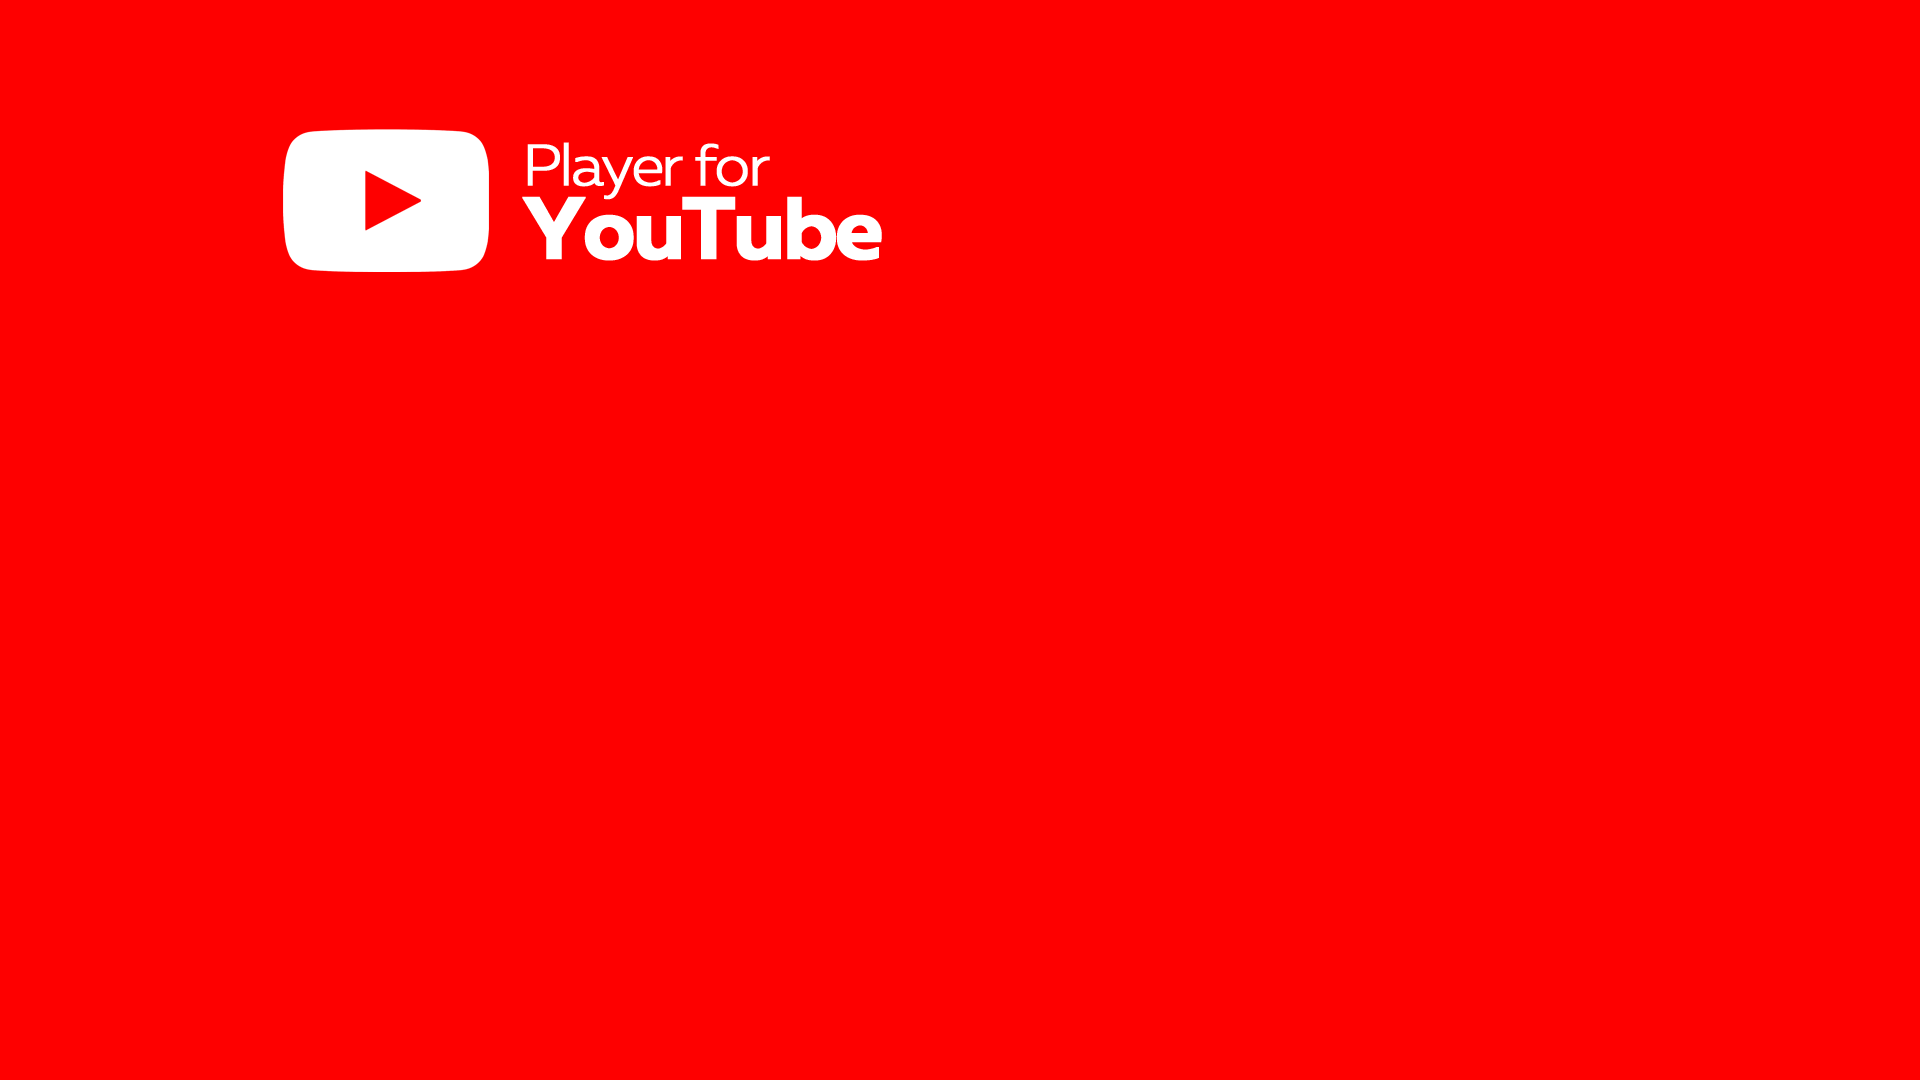 Comprar Player For Youtube Hd Youtube 4k Video Music Tv